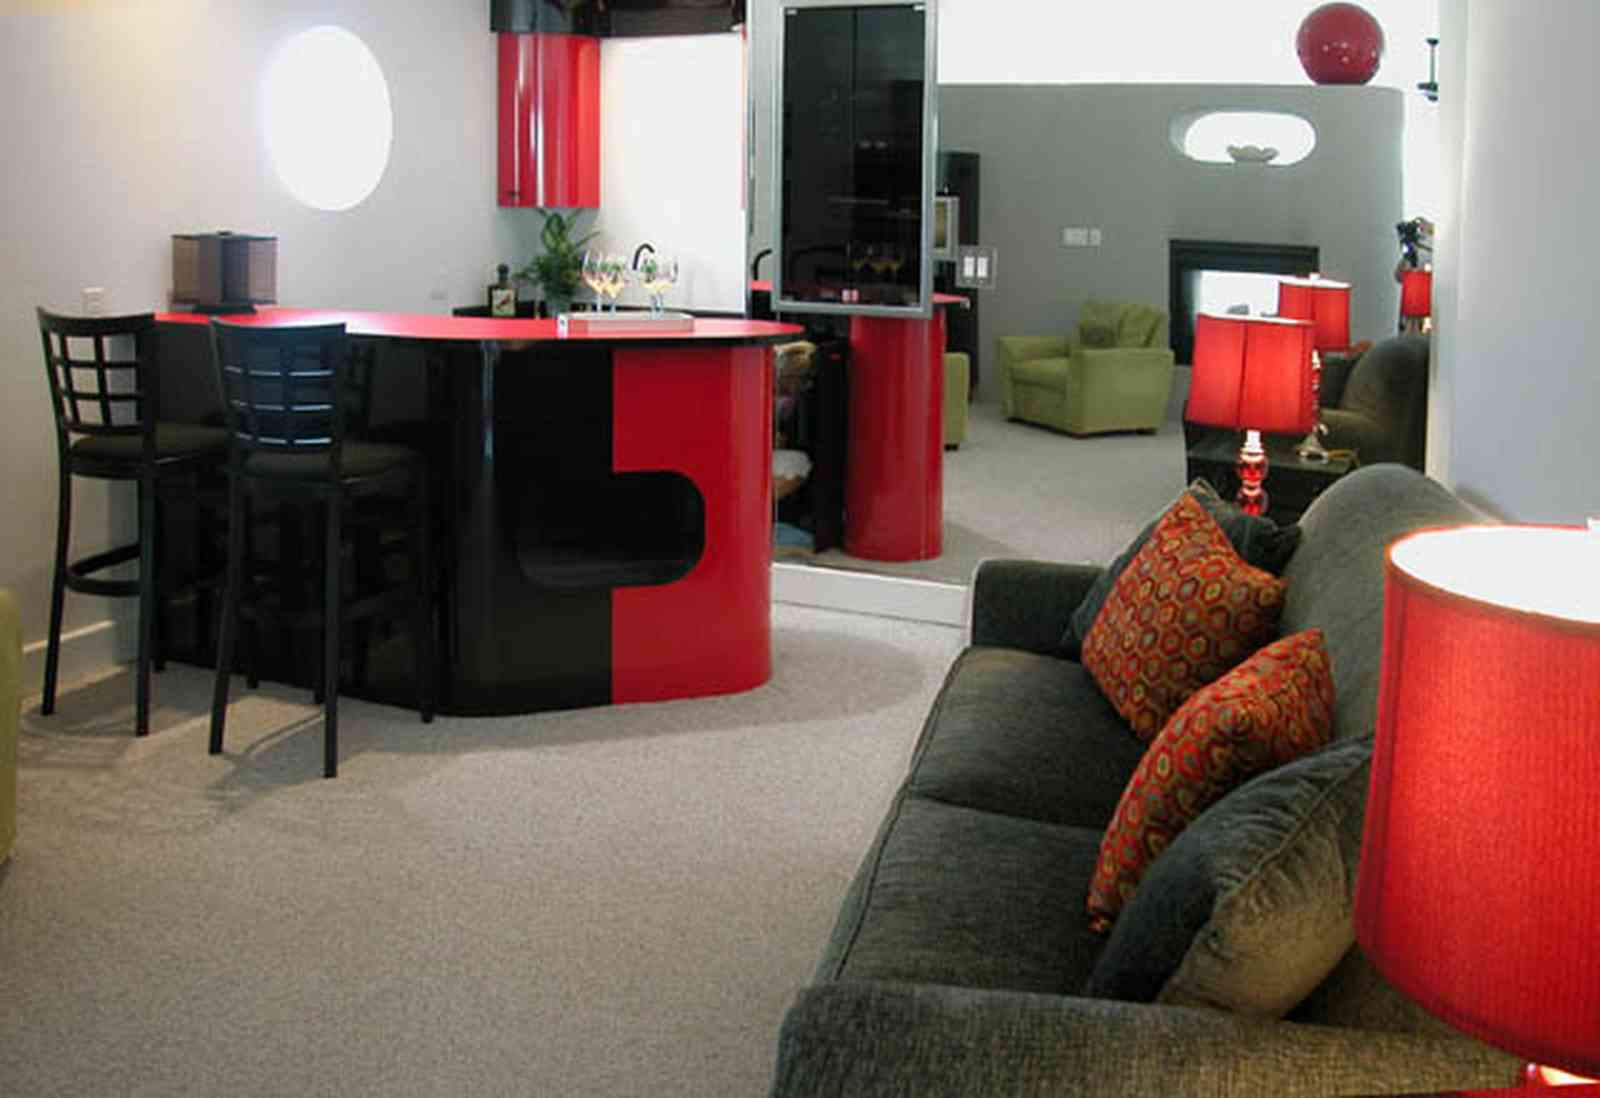 Navarre:-7332-Grand-Navarre-Blvd_26.jpg:  brown suede sofa, red jewel lamps, black laquer cabinets, bar, mirrored wall, round windows, white carpet